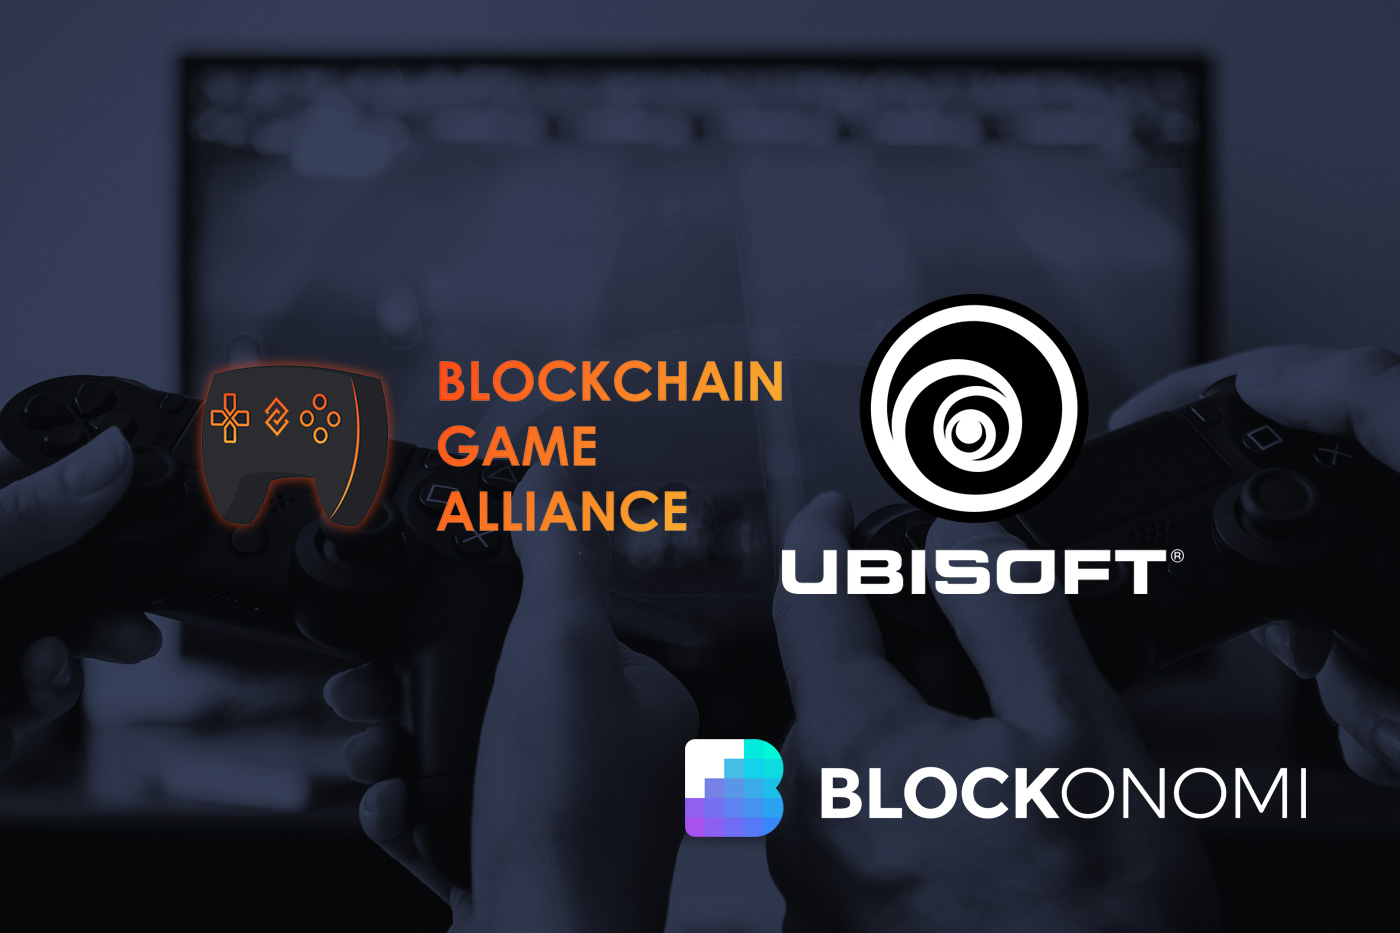 Ubisoft Blockchain Game Alliance